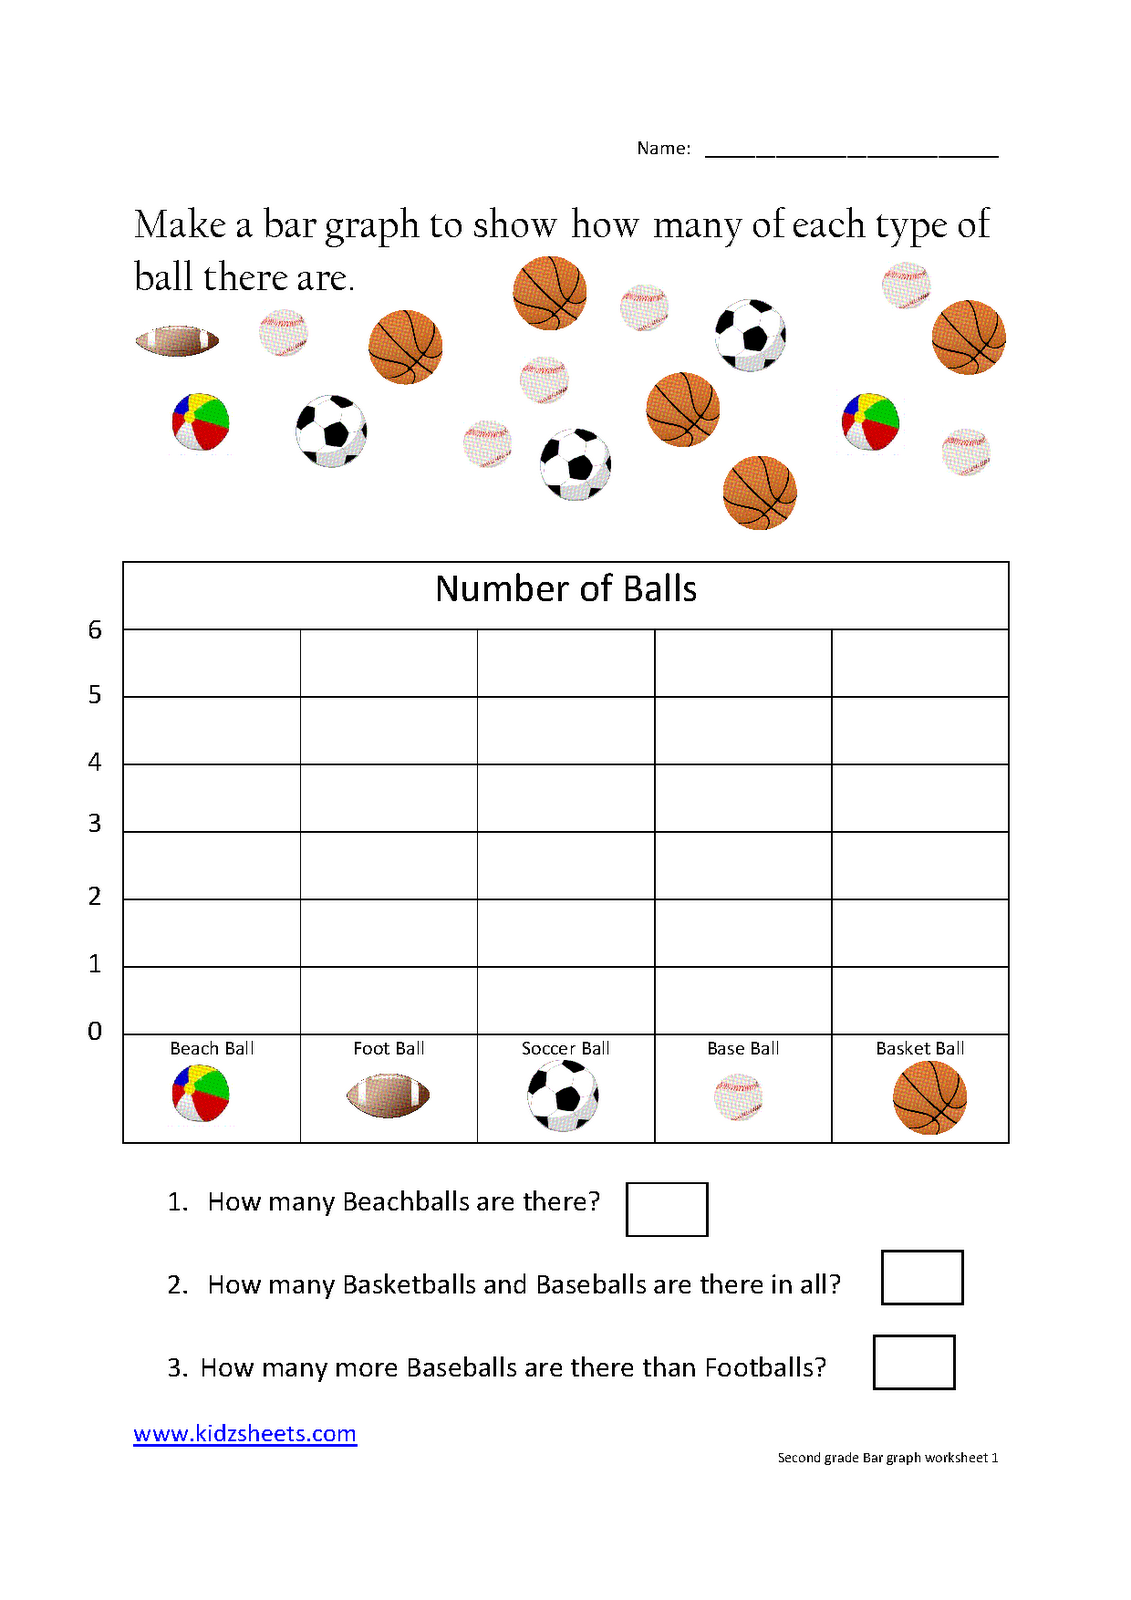 math worksheet : kidz worksheets second grade bar graph worksheet1 : Math Practice Worksheets 2nd Grade